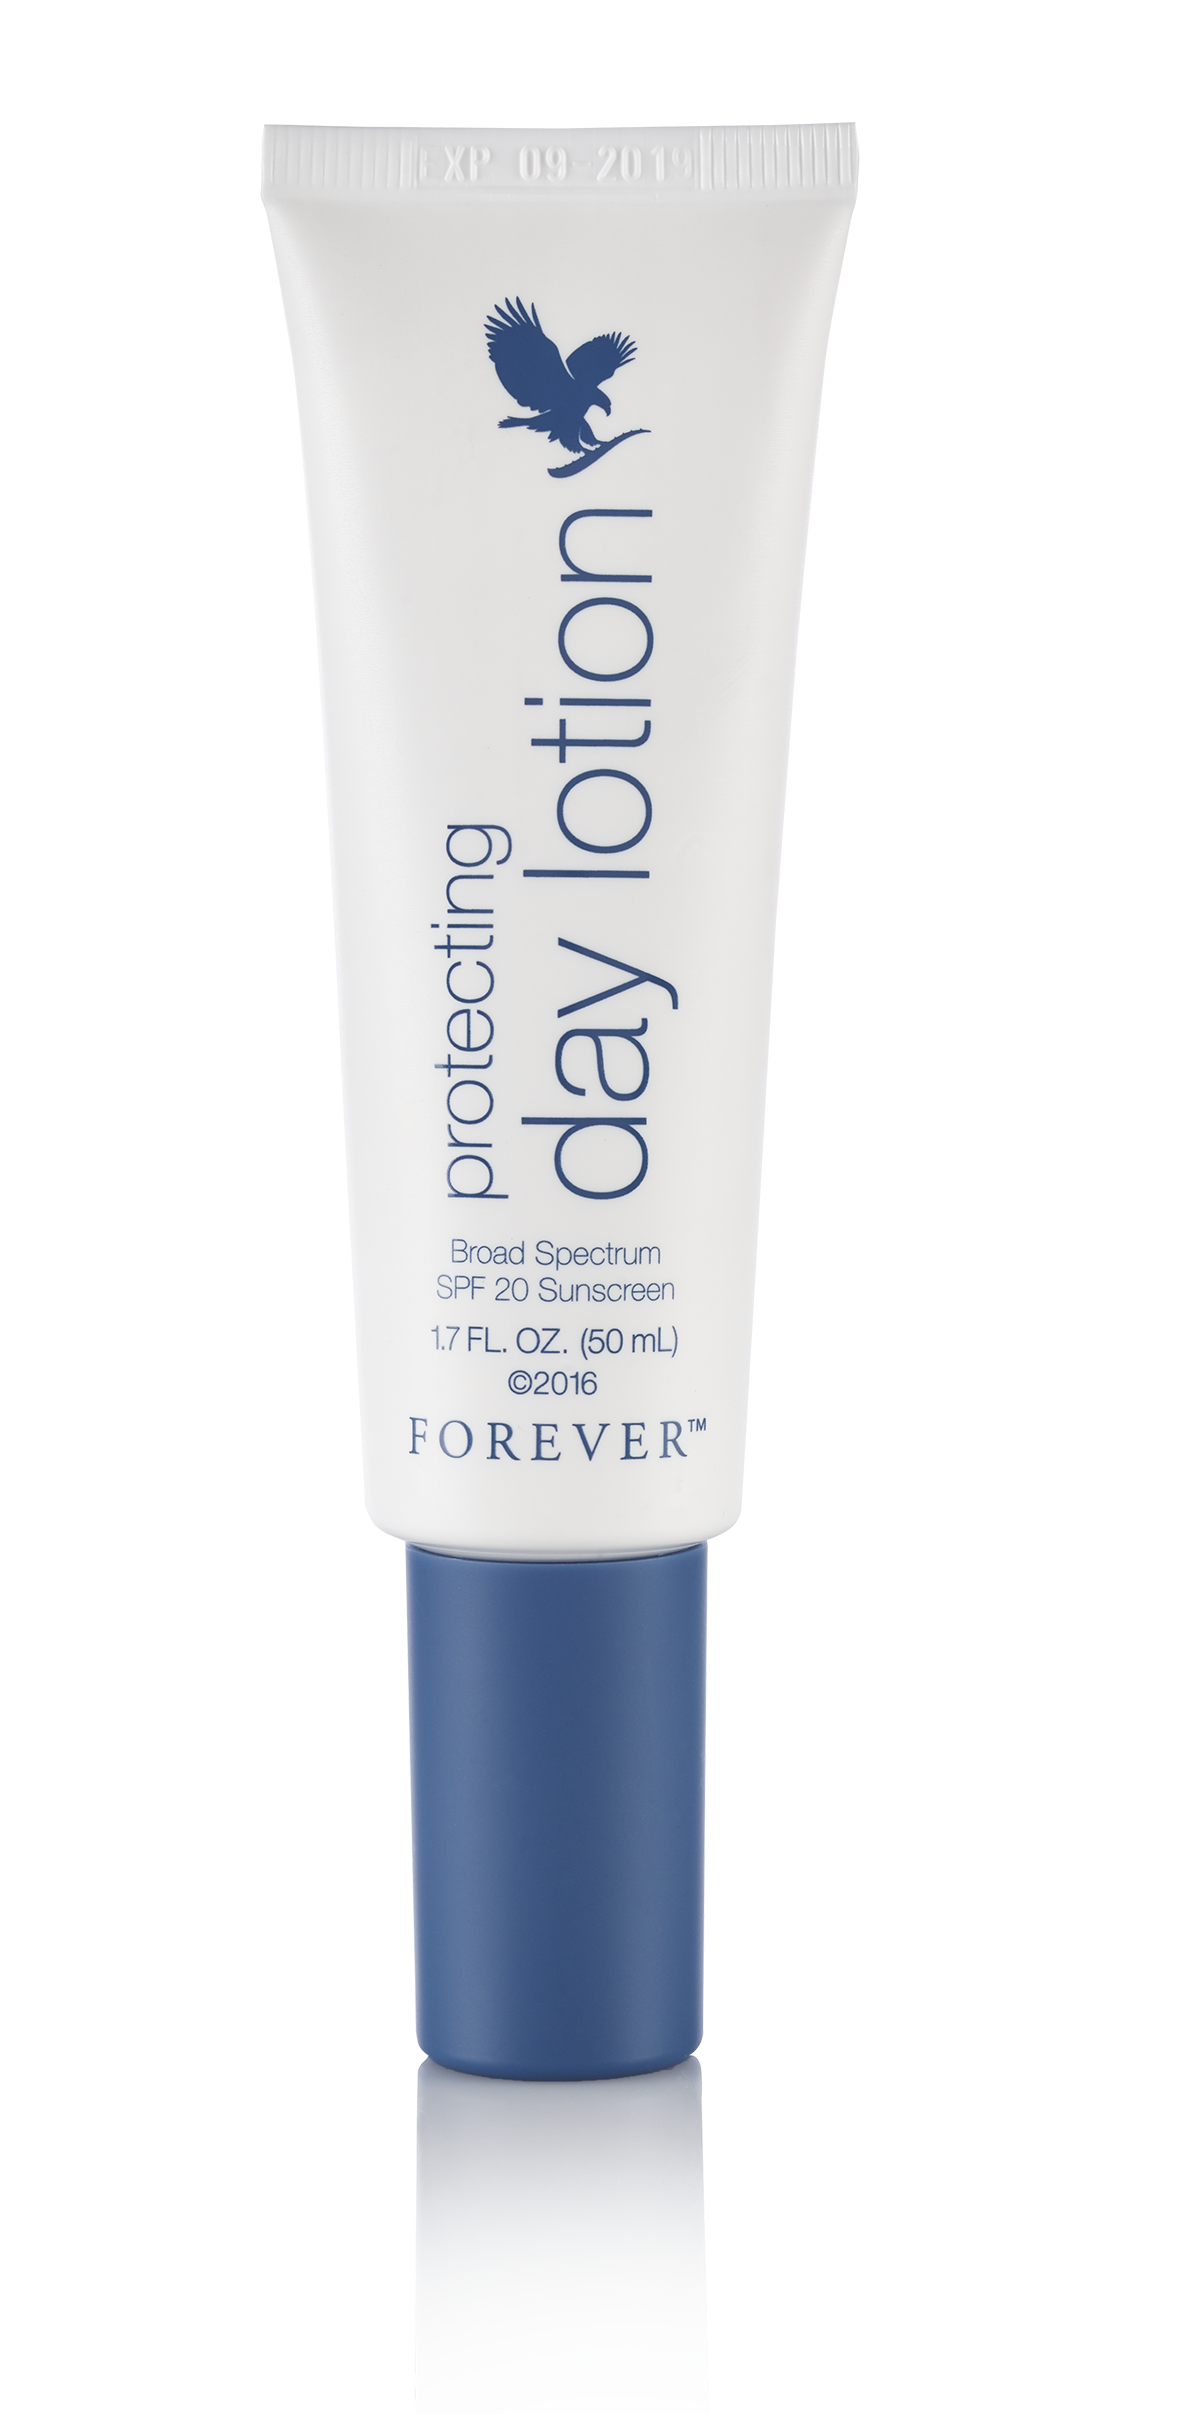 Protecting day lotion is a light day cream with SPF 20 that protects against the sun's harmful UVA and UVB rays.